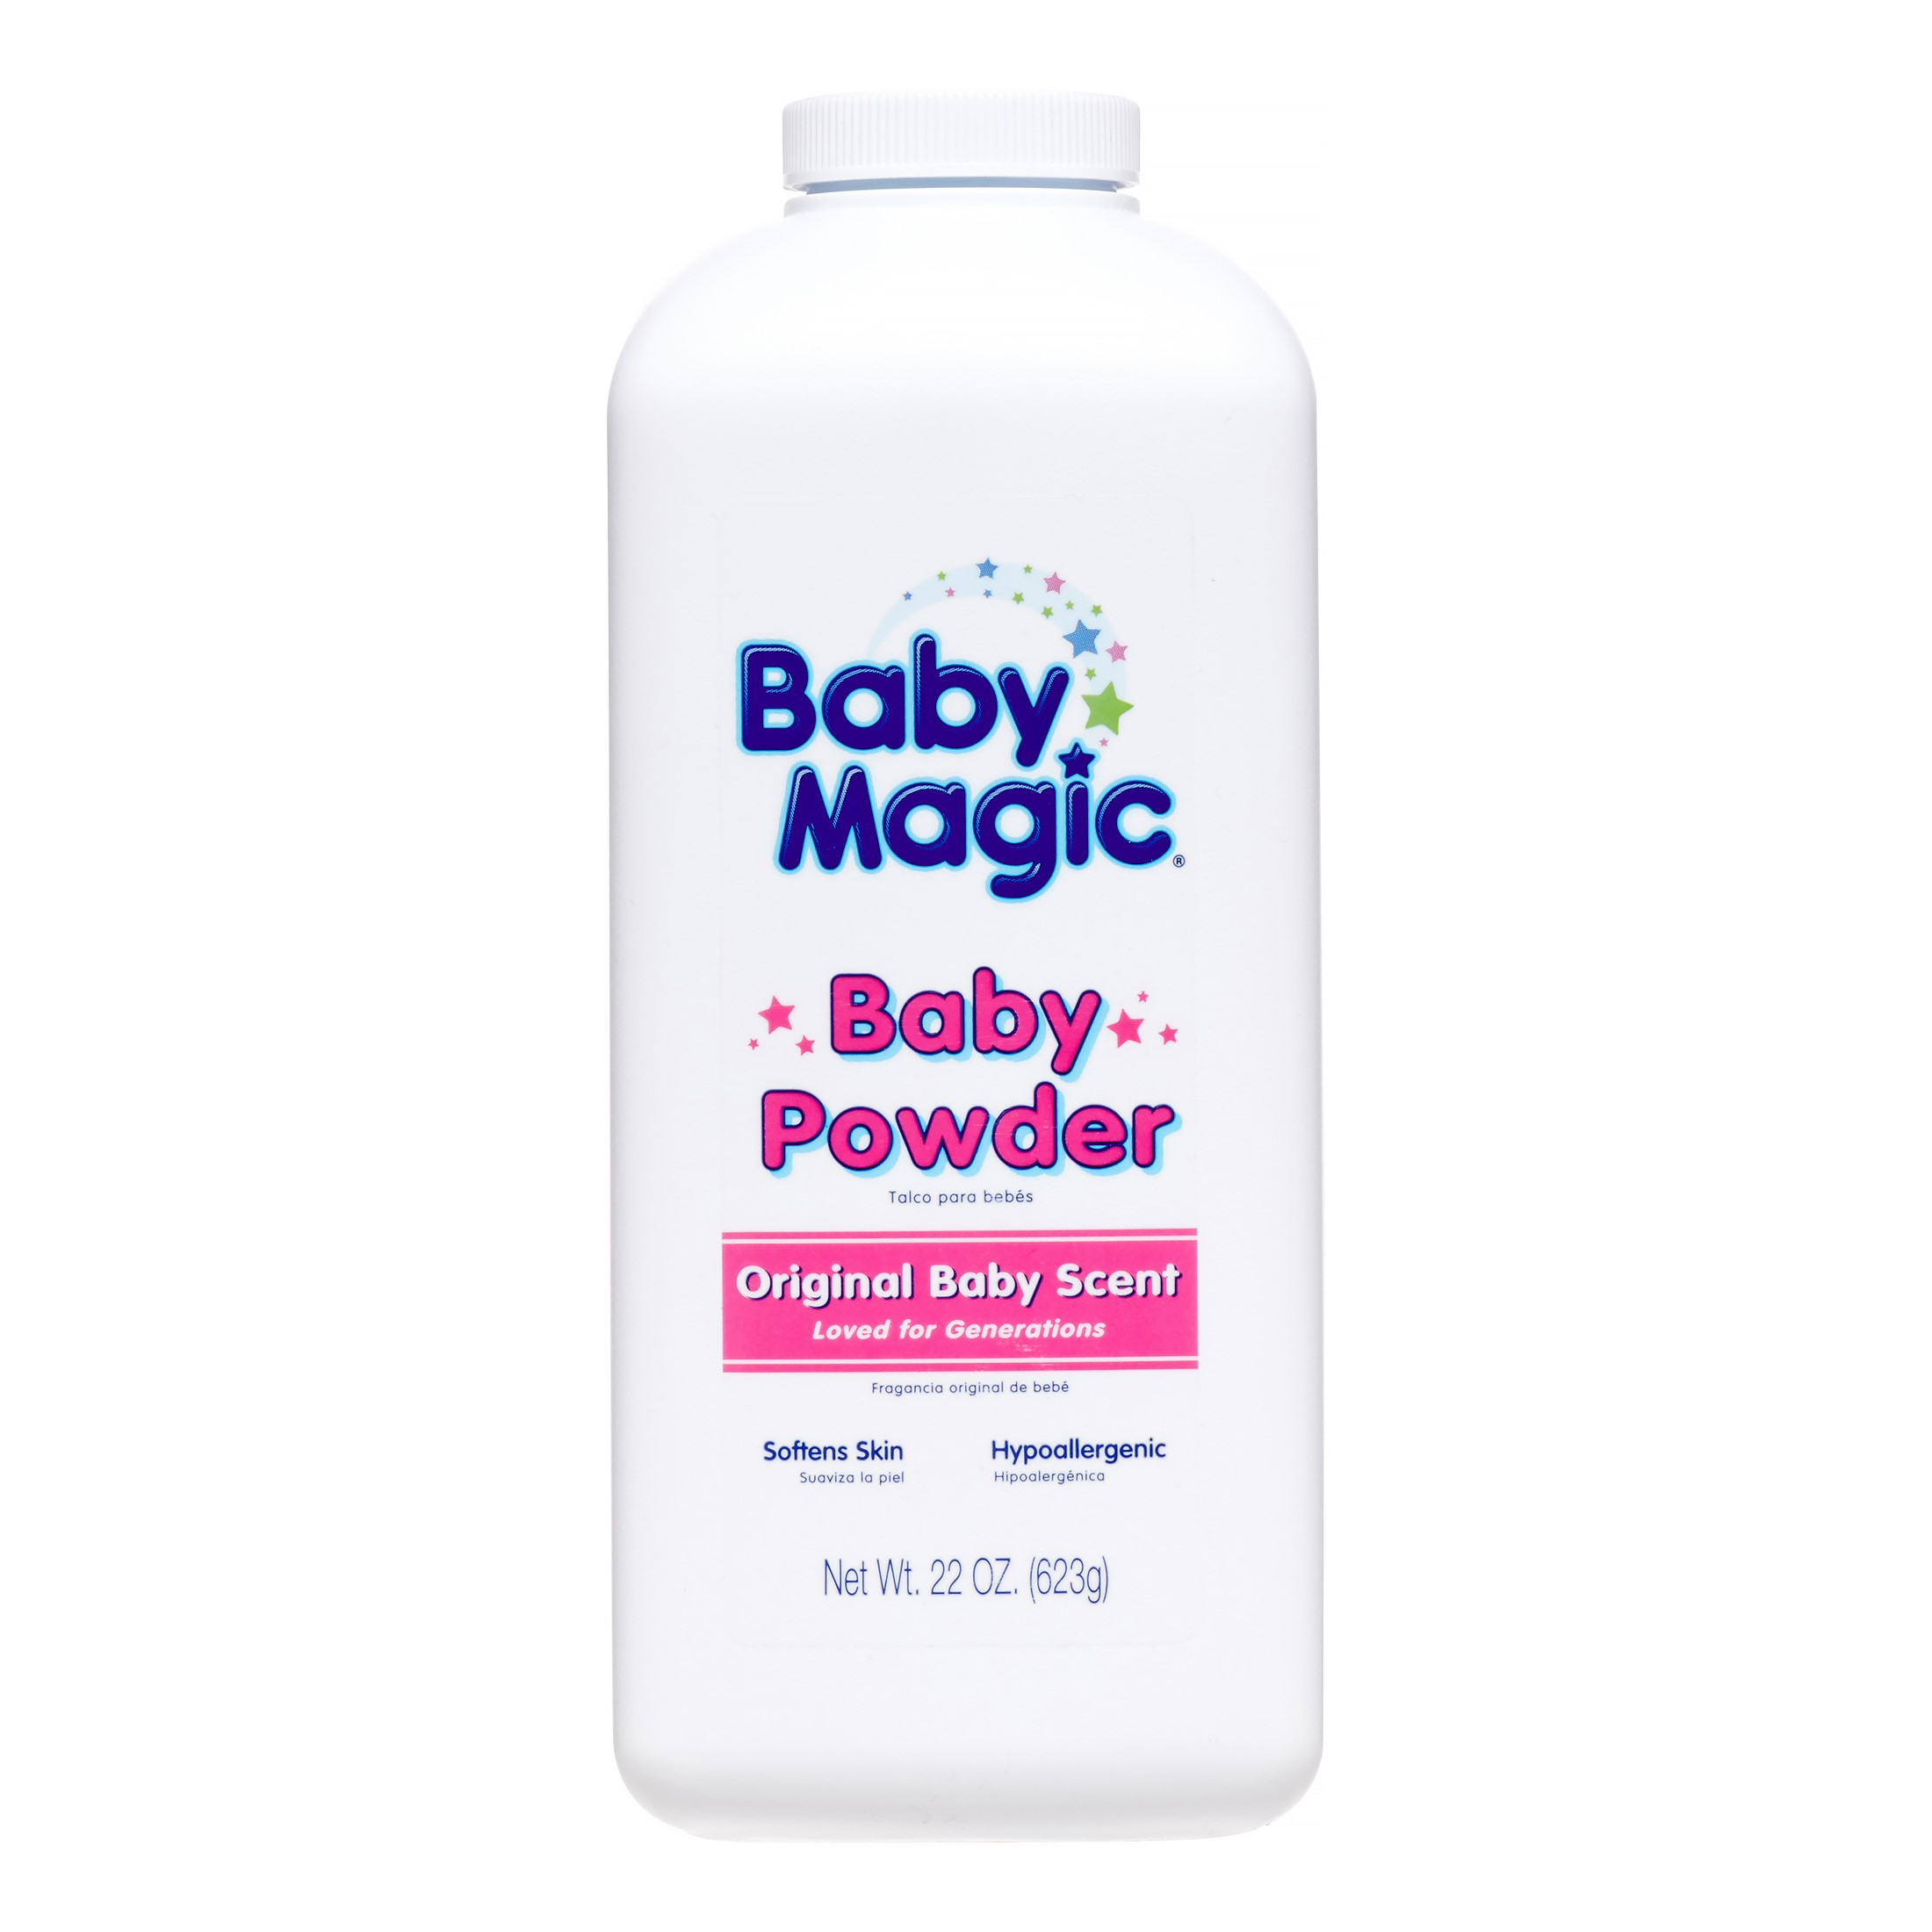 Baby Magic Baby Powder, Original Baby, 22 Fl Oz by Naterra International, Inc.